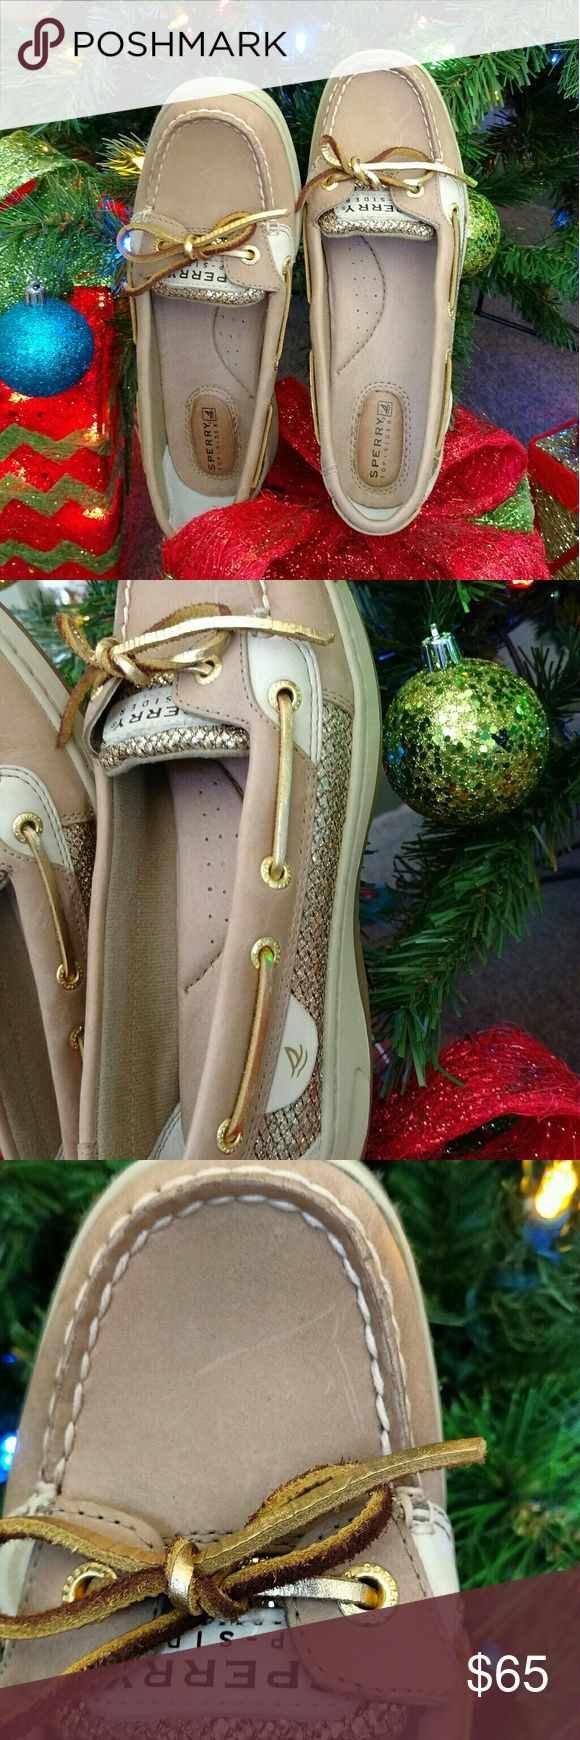 Sperry Christmas 🎁🎁🎄🎄 Women's new only tried on in the house  my daughter didn't like them pictures show small scratch on top from being stored ..perfect gift .. bundle and make a reasonable offer .my loss your gain 🎄🎄🎁🎁🎁🎁🎁🎁 Sperry Top-Sider Shoes Flats & Loafers